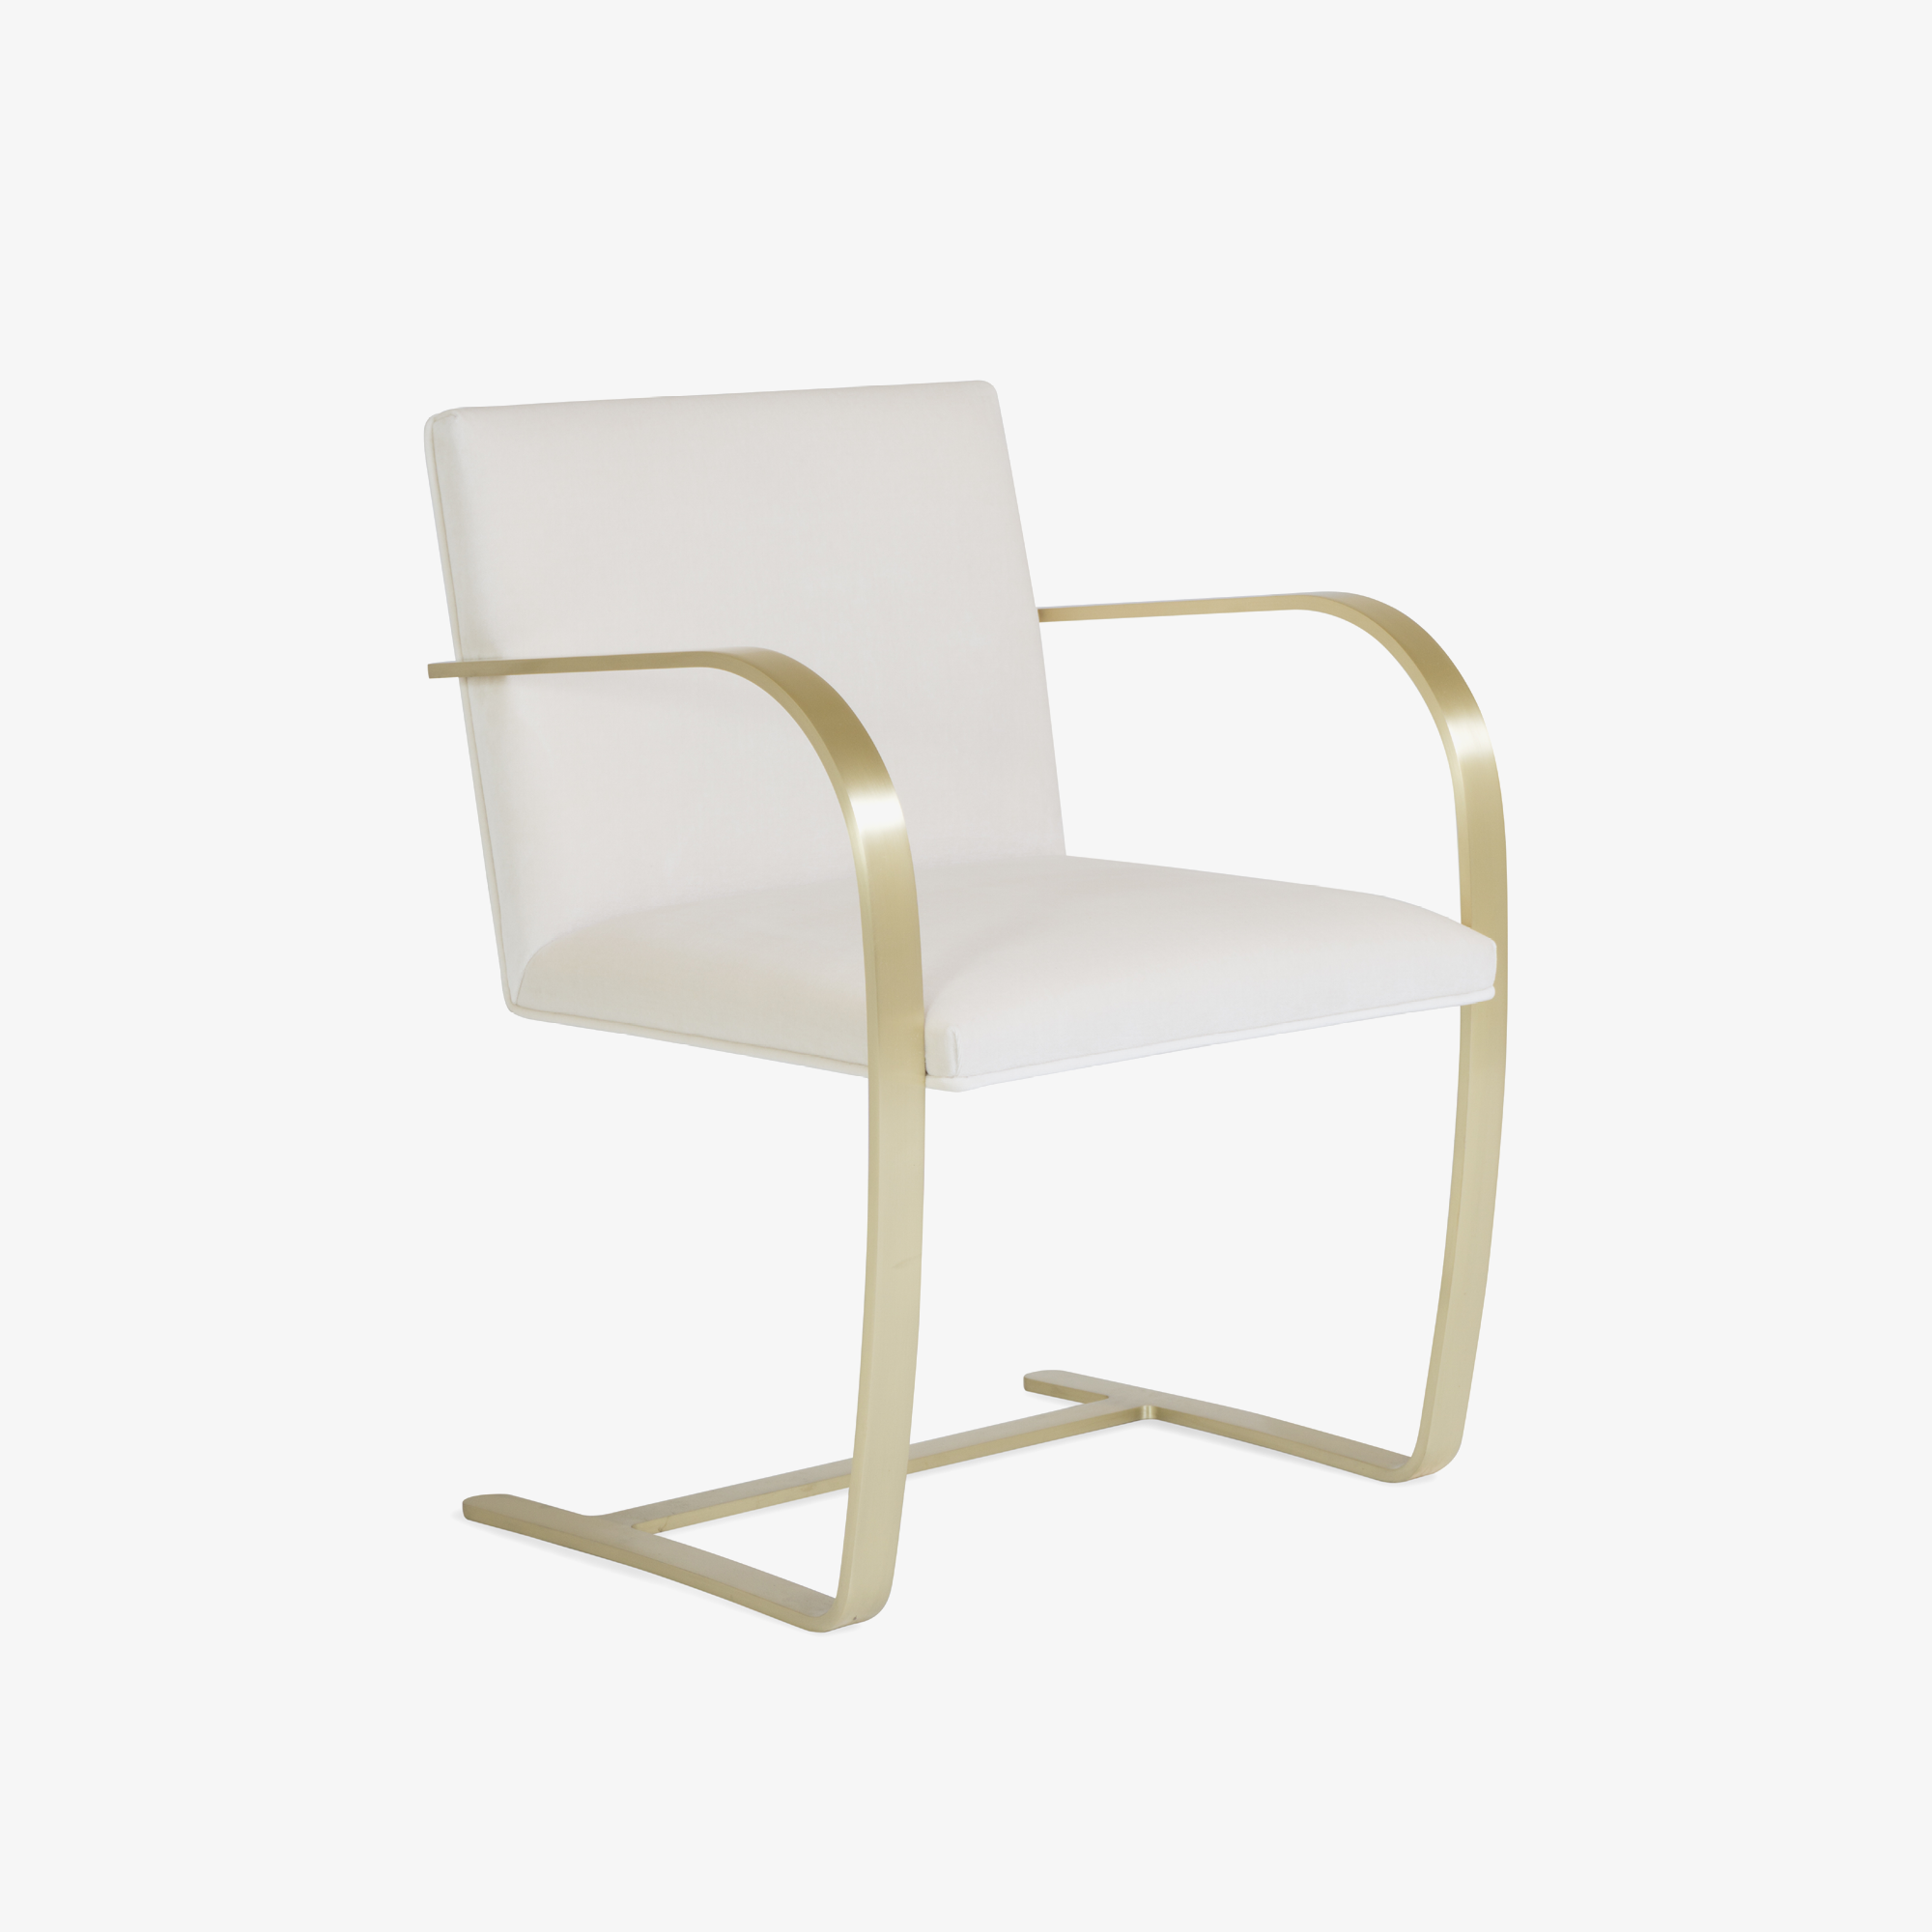 Brno Flat-Bar Chairs in Creme Velvet, Brushed Brass.png